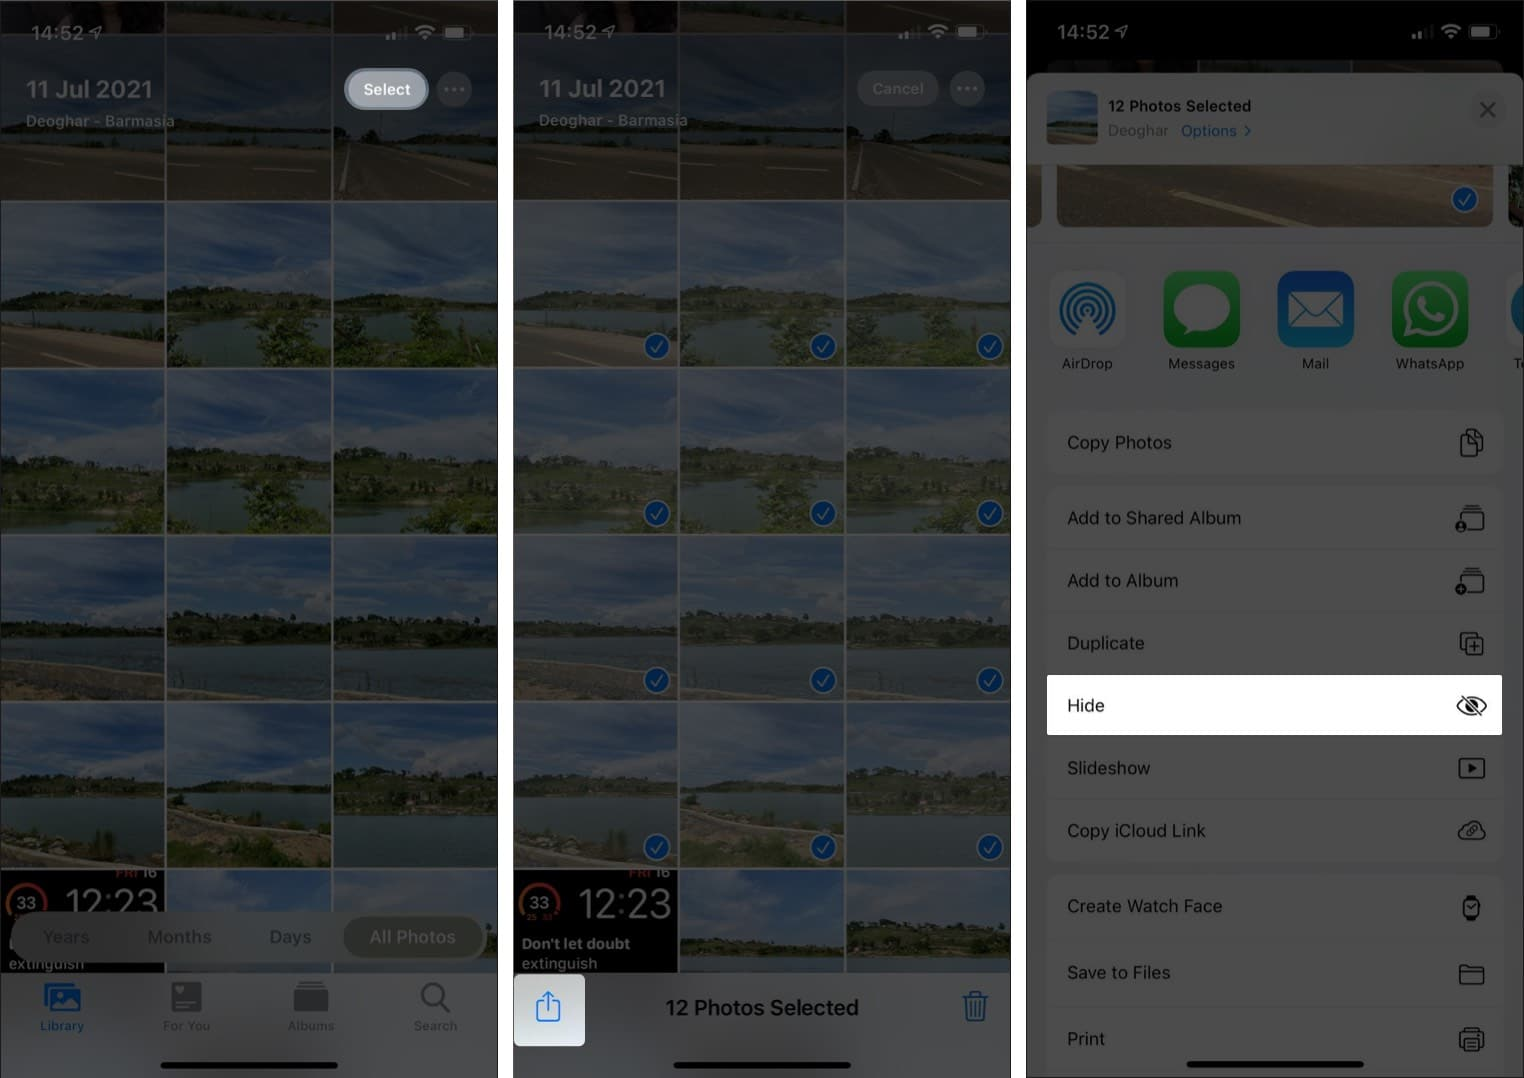 Hide your Selfies, screenshots, or other photo on iPhone